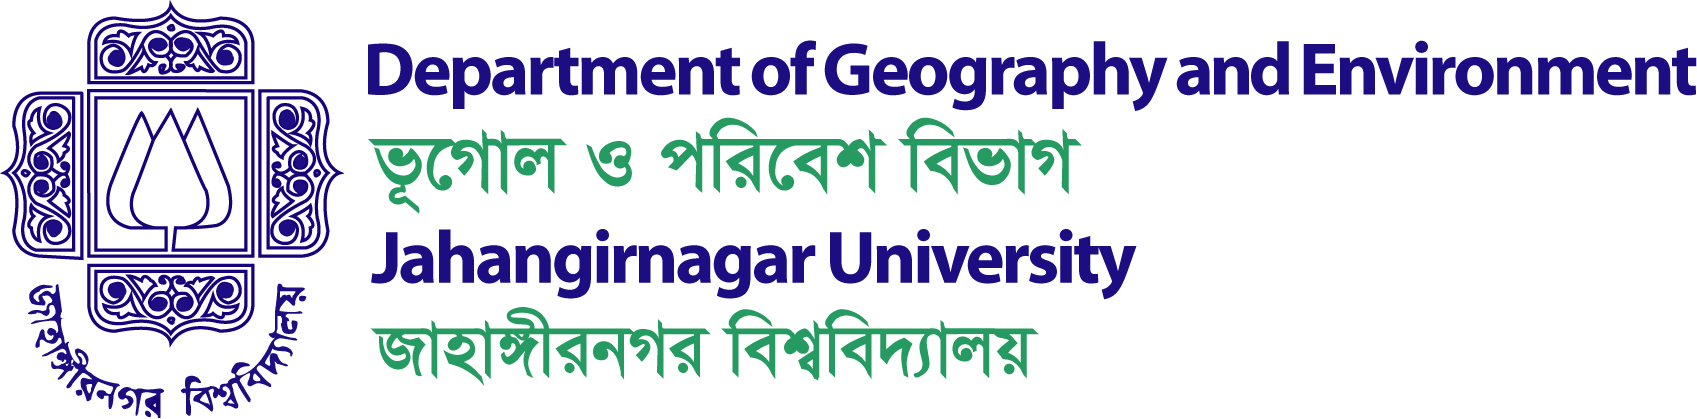 Department of Geography and Environment